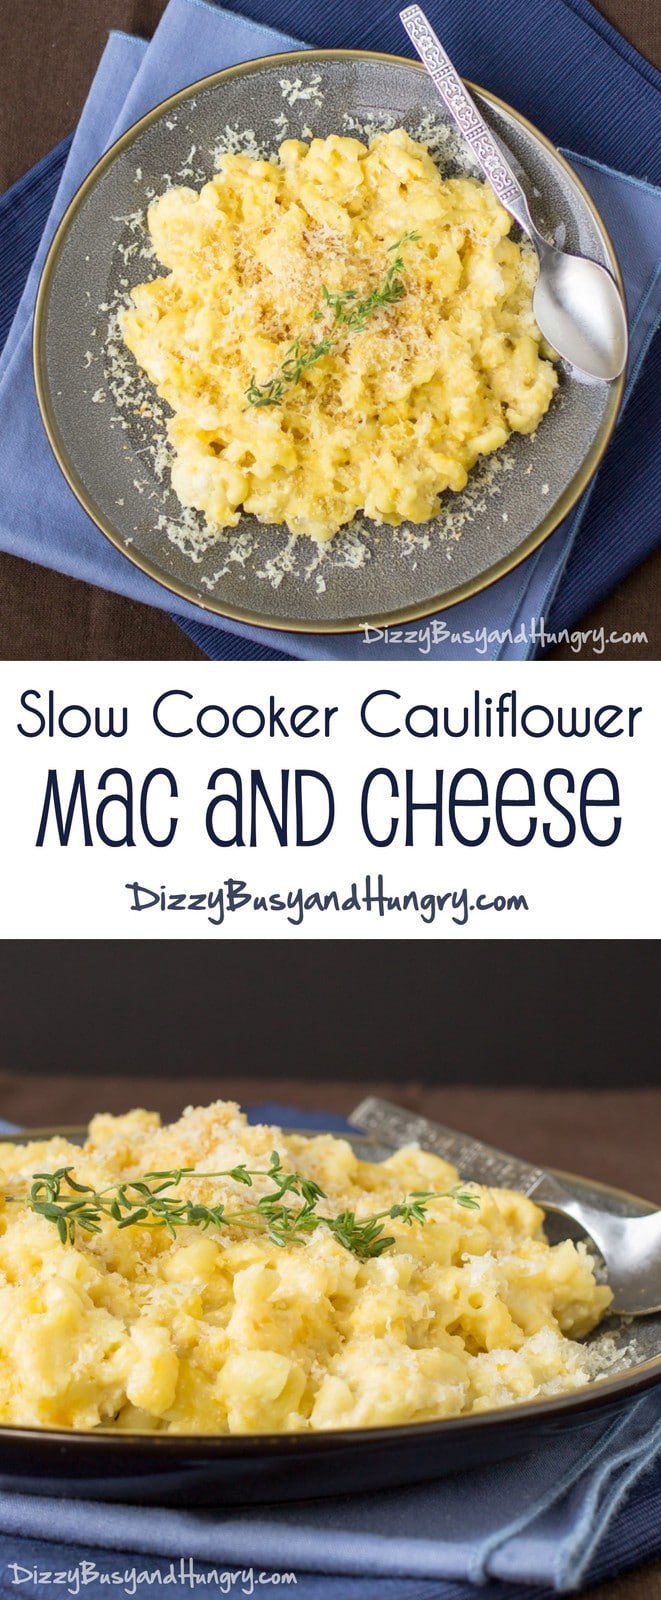 Slow Cooker Cauliflower Mac and Cheese | DizzyBusyandHungry.com - Easy, cheesy, nutritious, and sure to please even picky eaters!